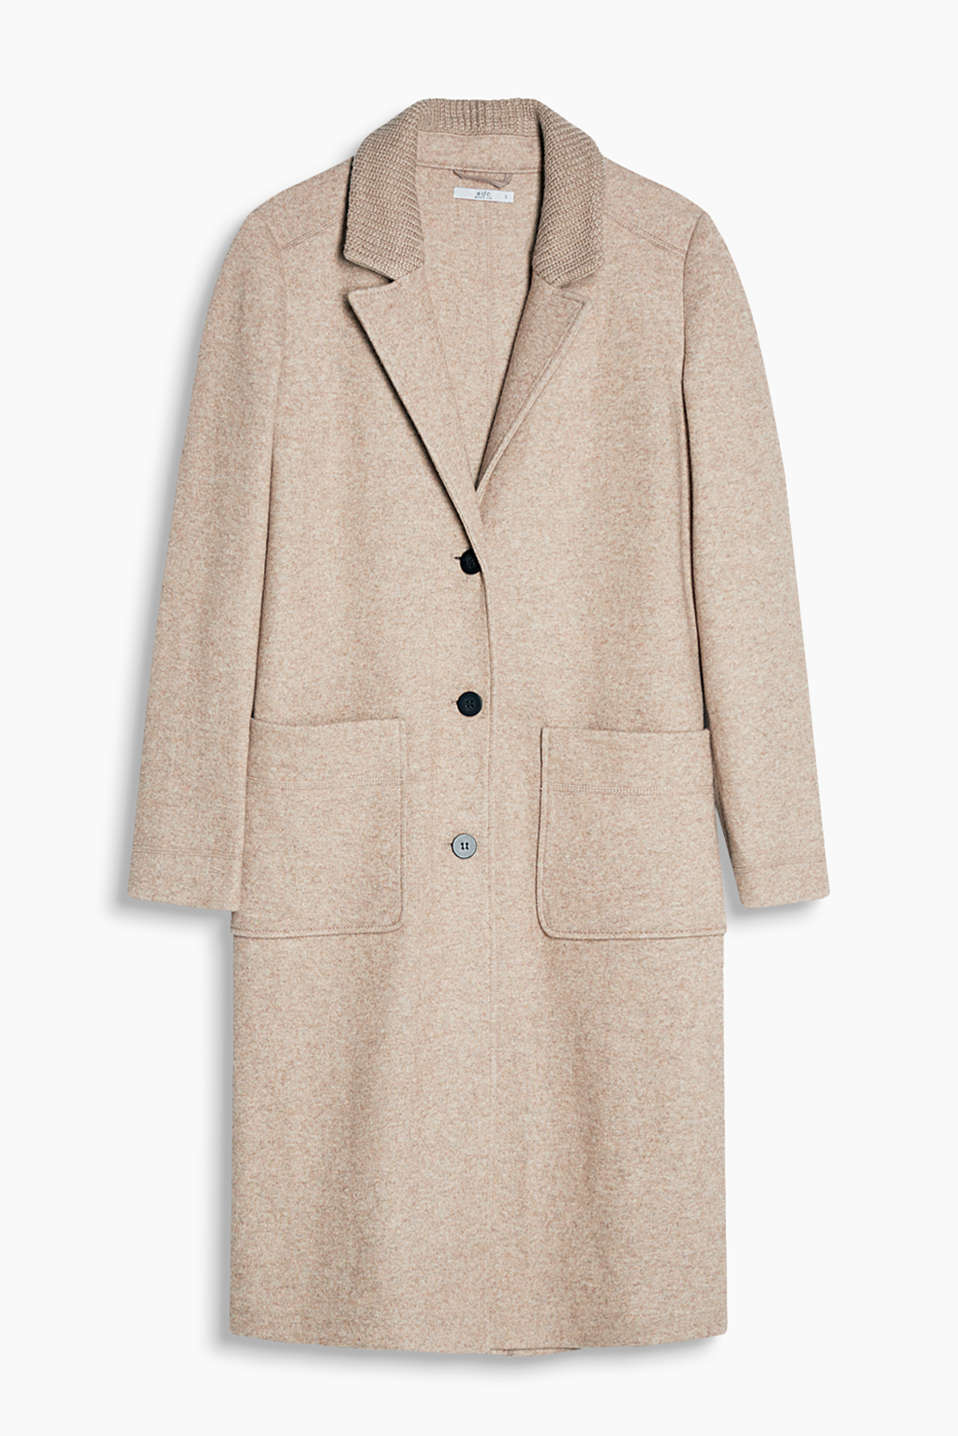 Unlined coat in melange blended wool with a fine knit finish